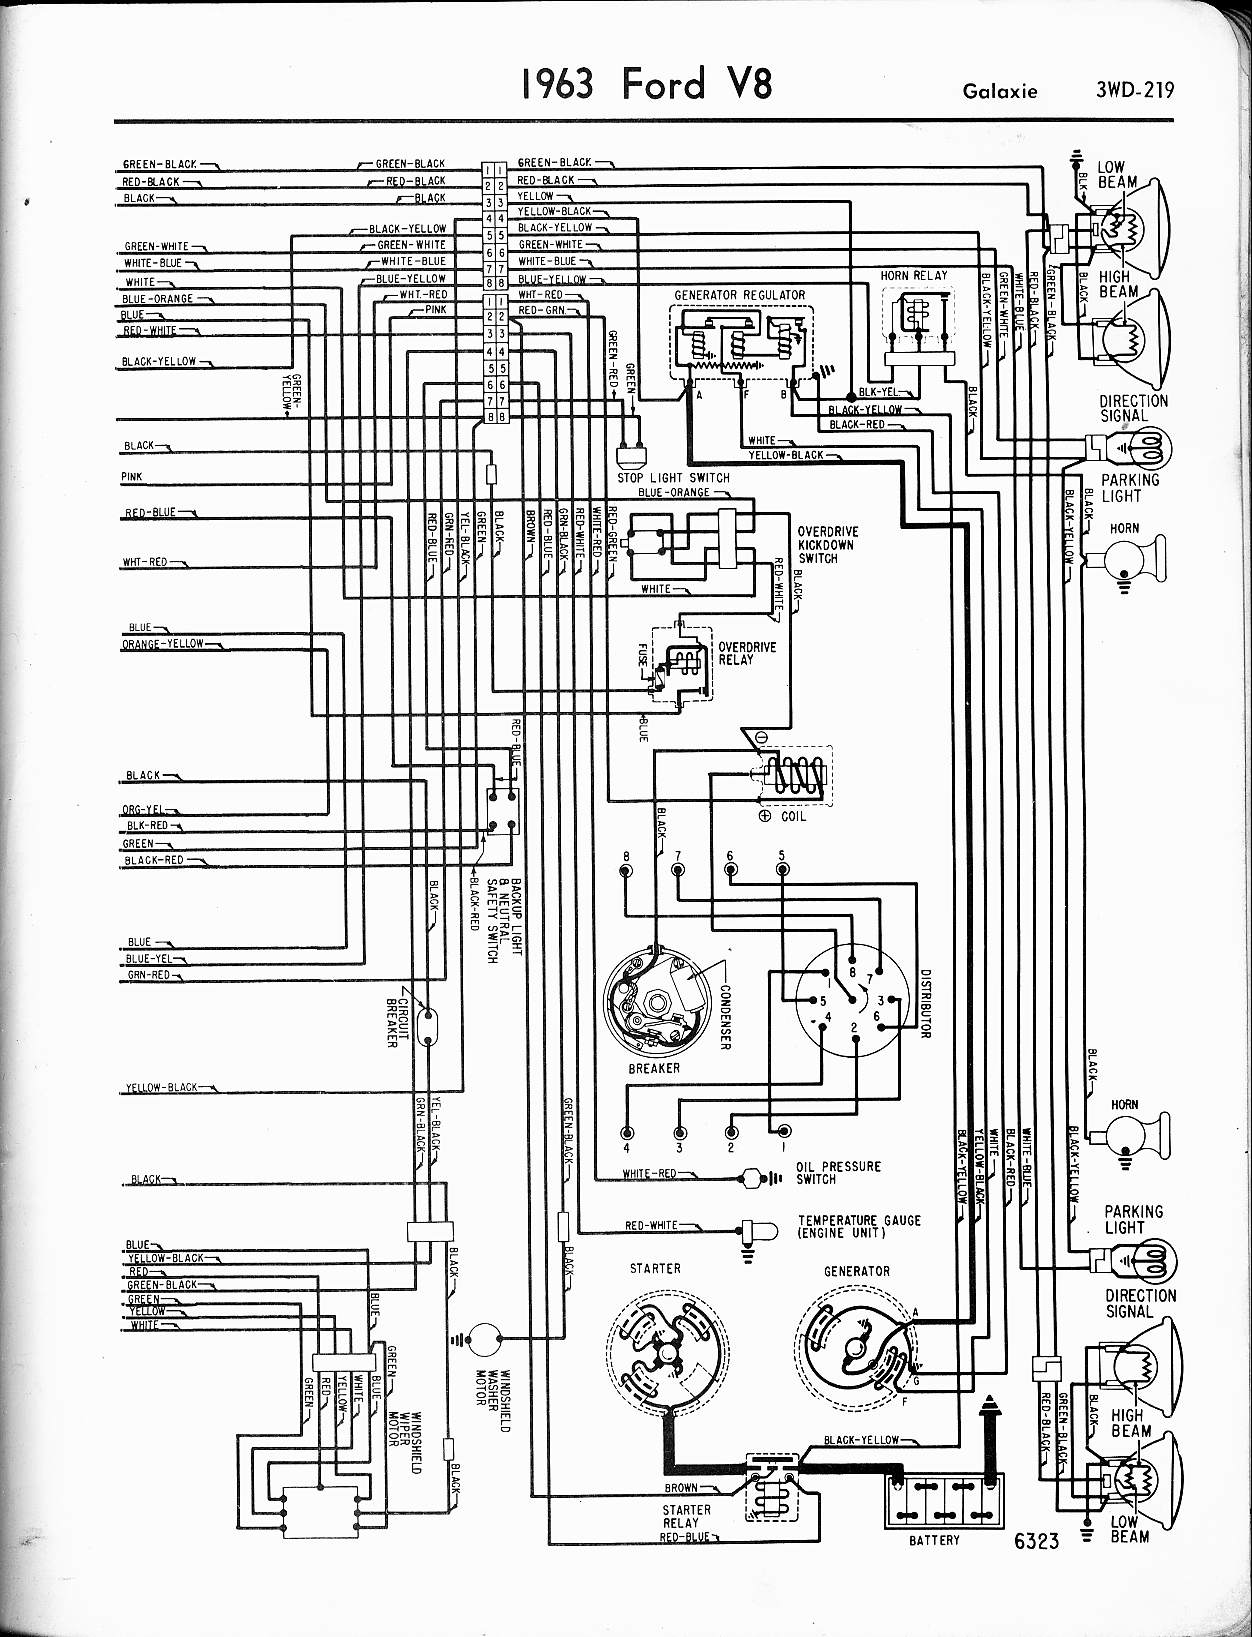 1963 Ford Galaxie 500 Wiring Diagram - Wiring Diagram Database